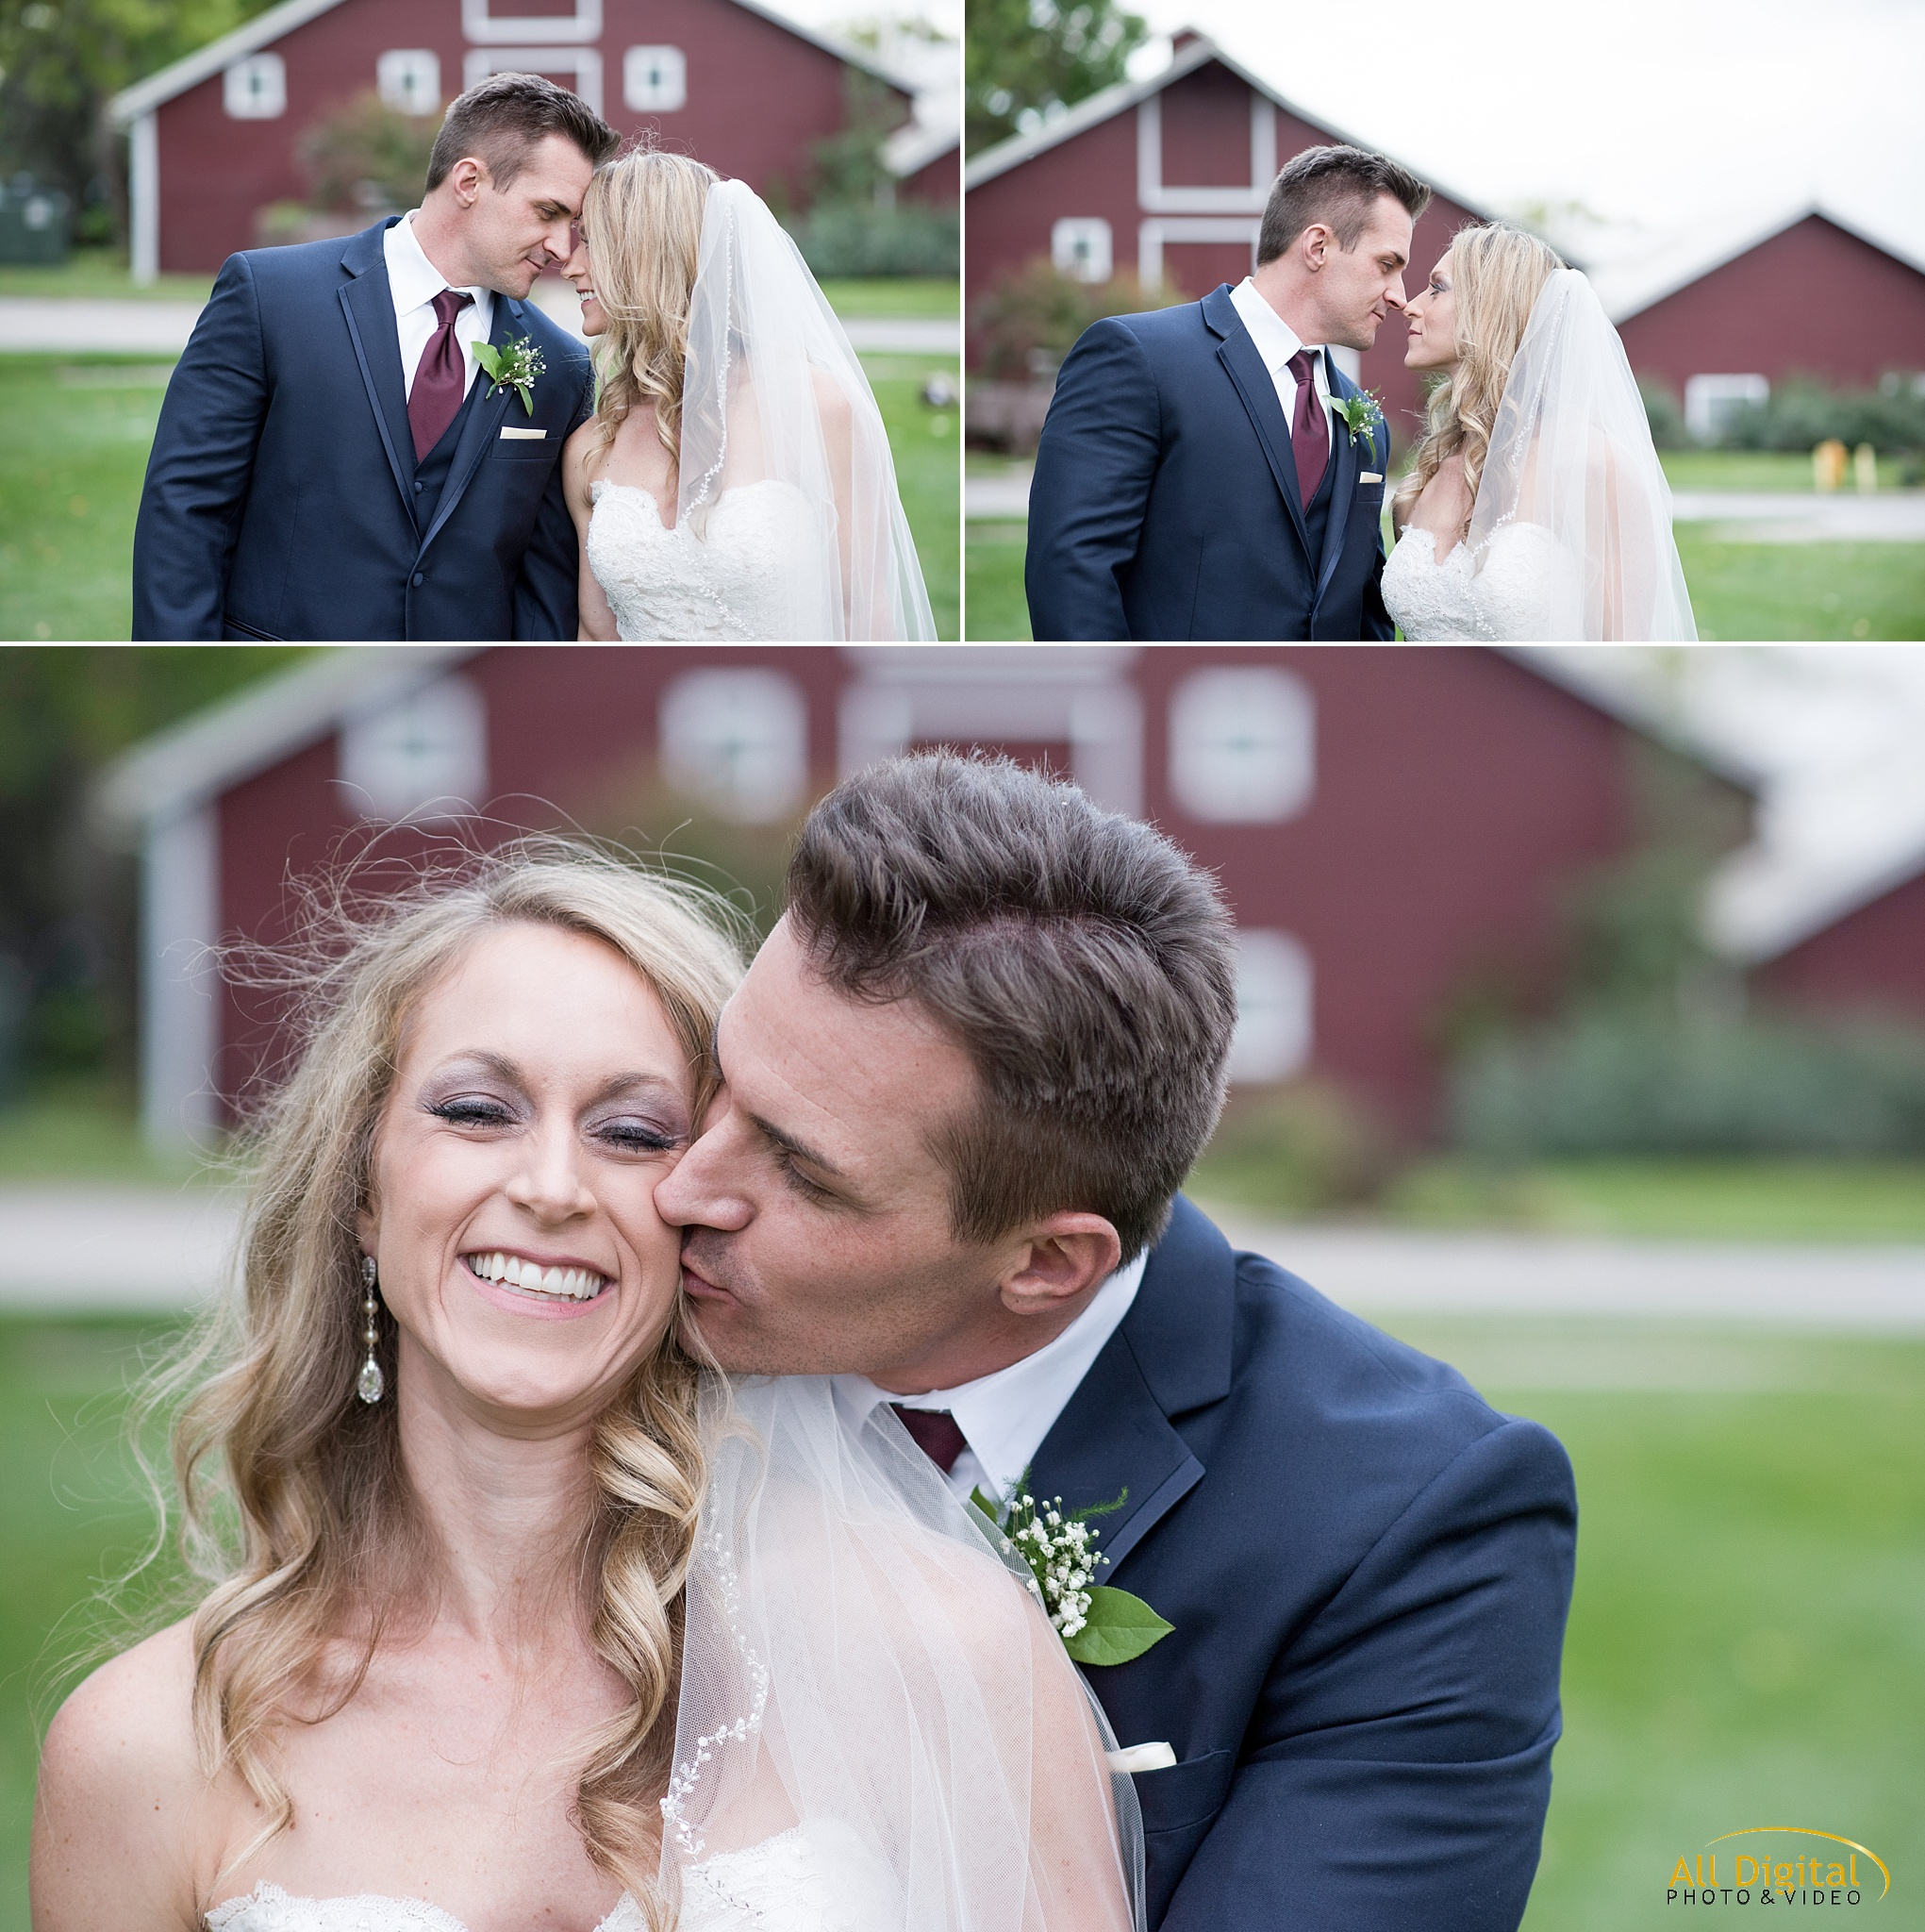 Tina & Nathan - Romantic Portraits at Raccoon Creek